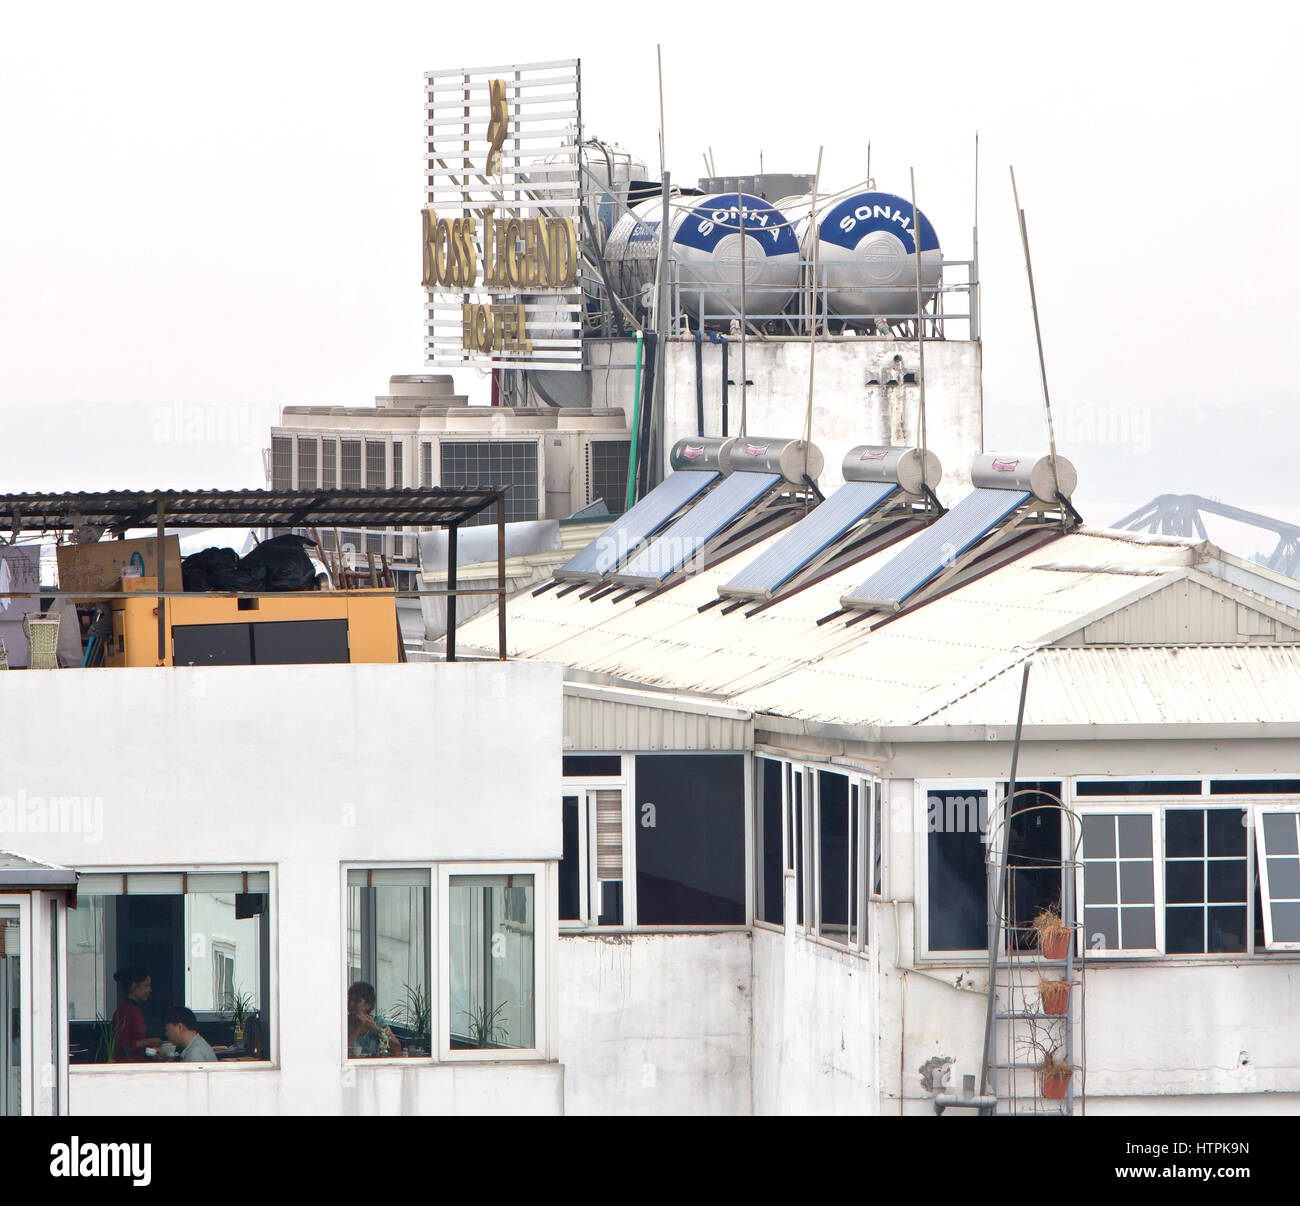 Solar hot water heaters with holding tanks installed on rooftop,  Boss Legend Hotel, high rise. - Stock Image